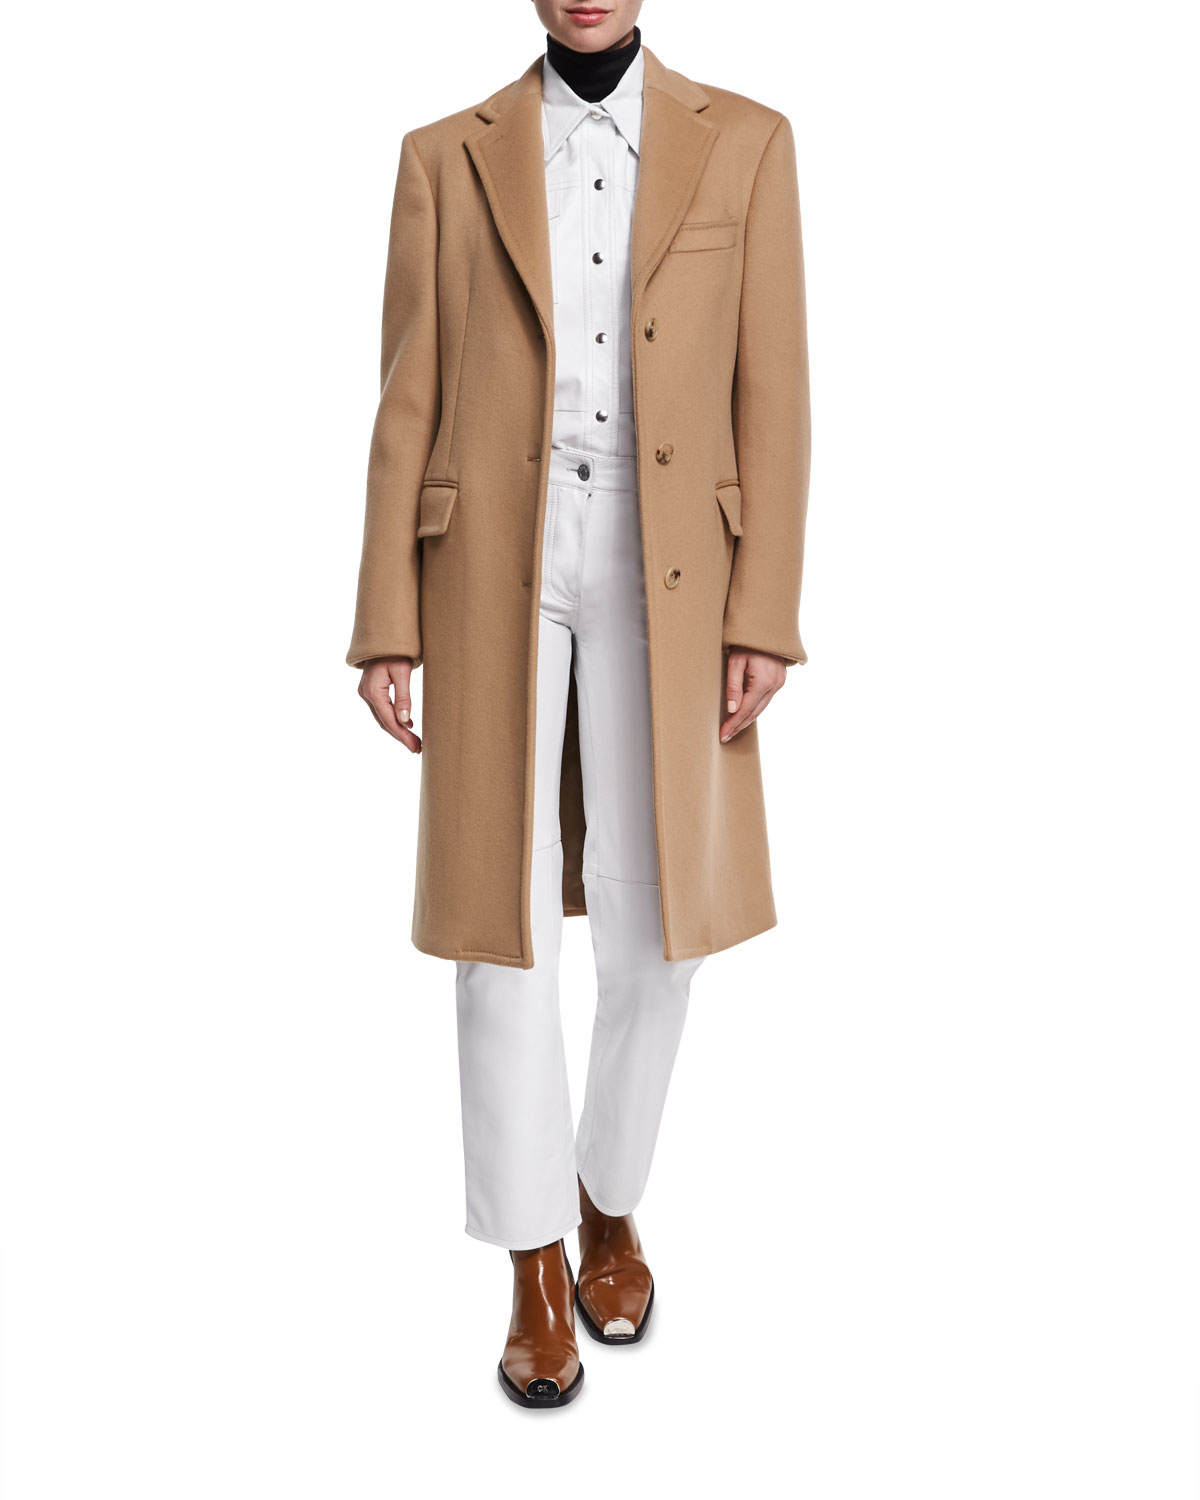 6e040a0316520 CALVIN KLEIN 205W39NYC Double-Face Virgin Wool Single-Breasted Coat ...